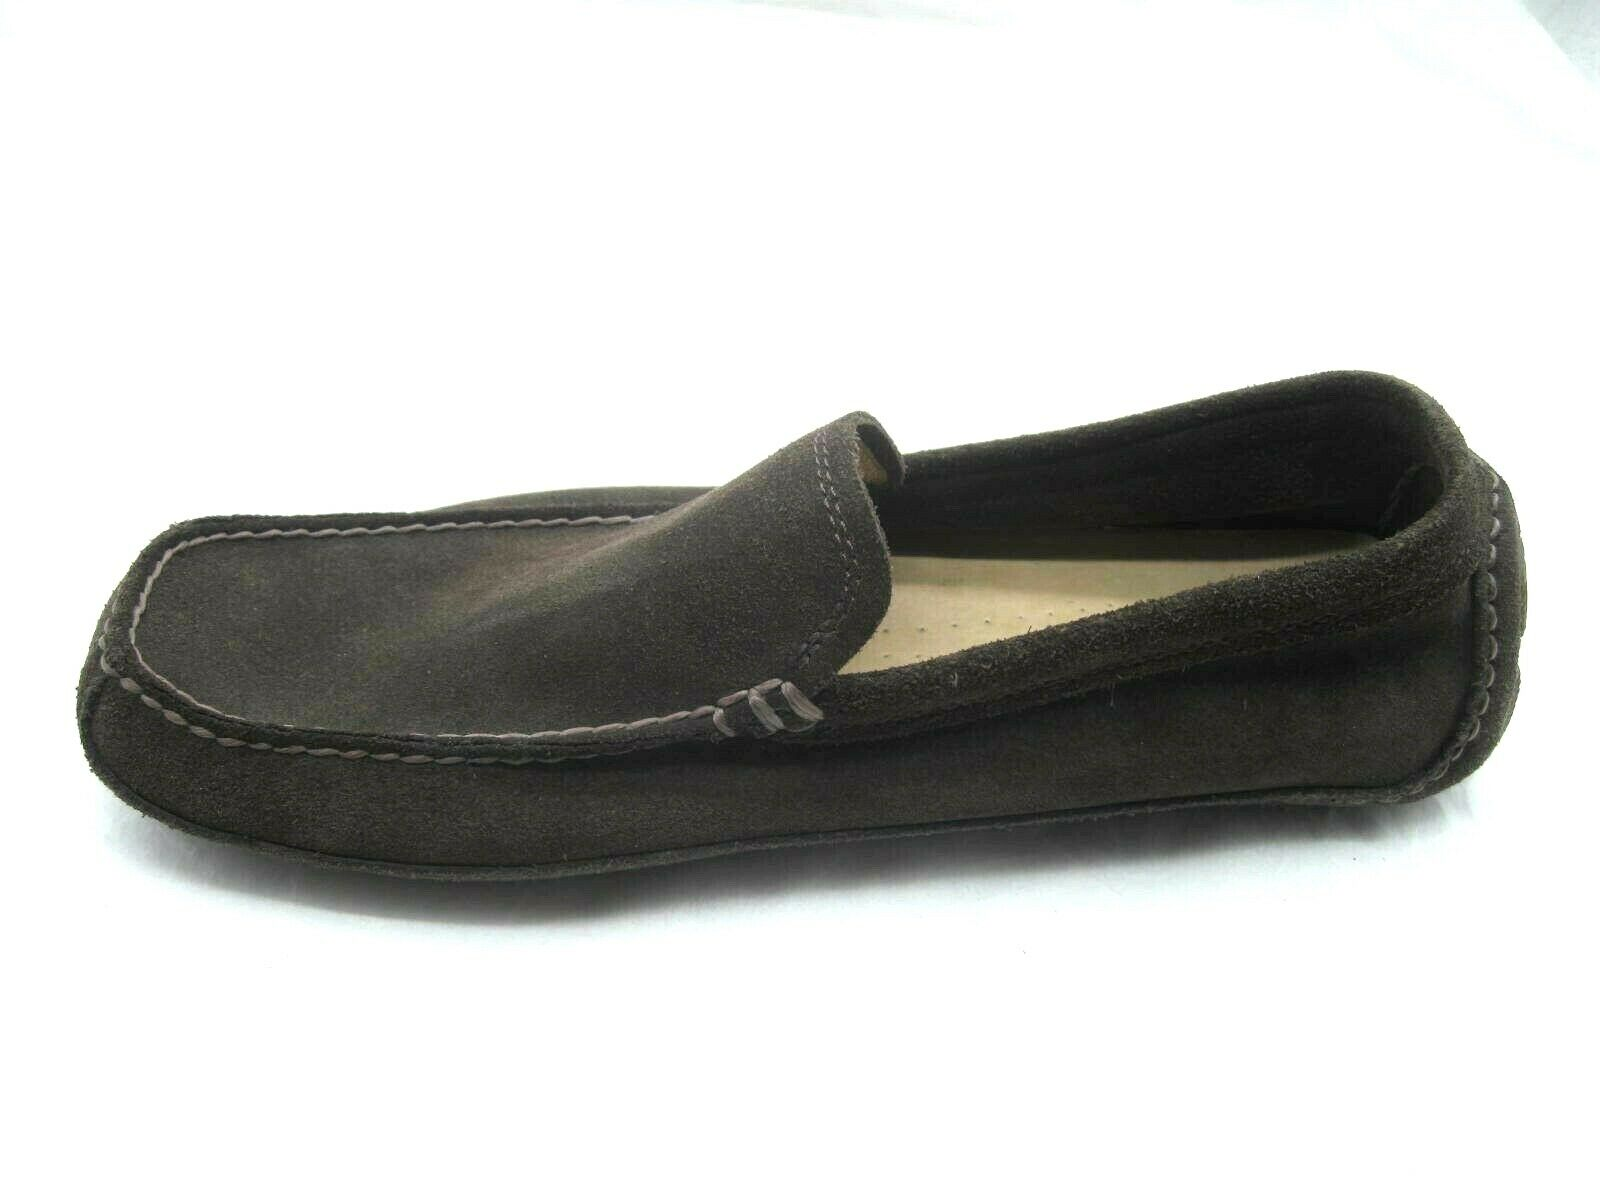 Banana Republic brown loafers Mens driving loafers shoes 101 2 10.5M 577316